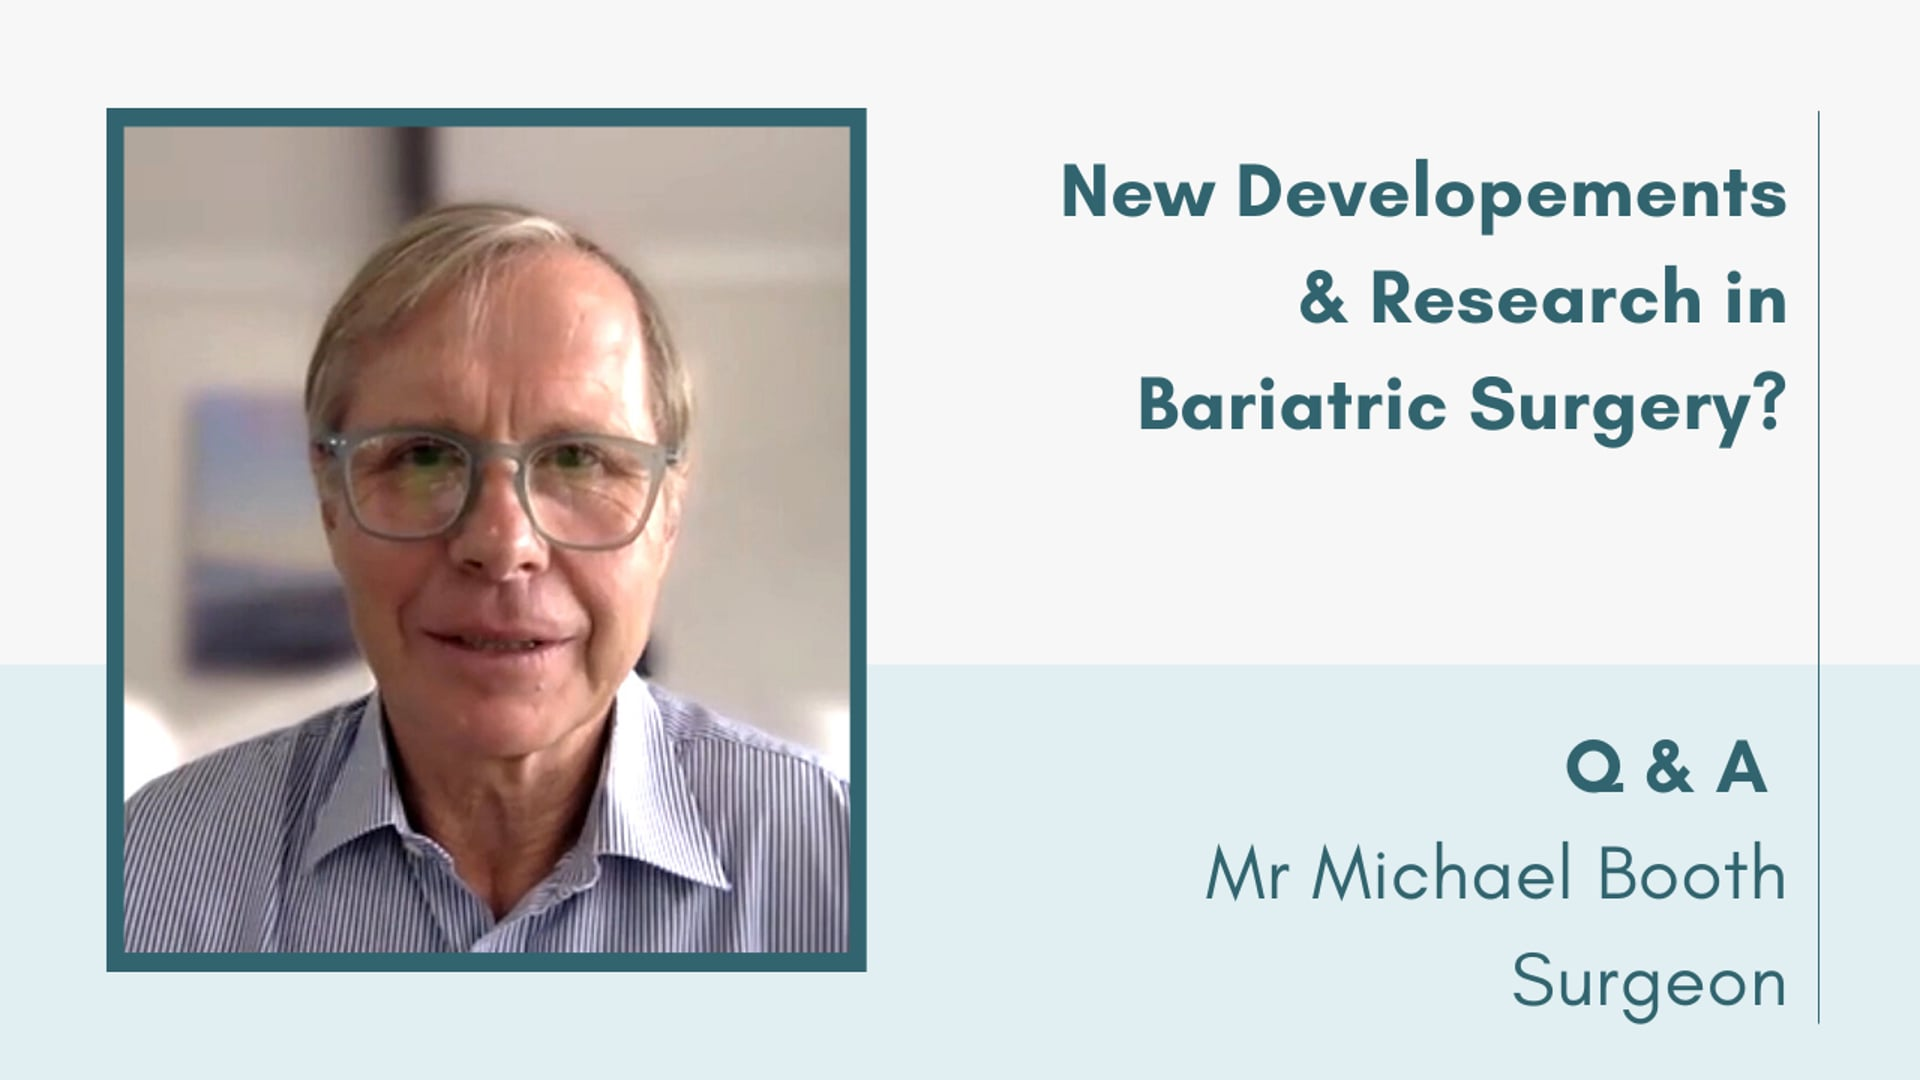 New Developments & Research in Bariatric Surgery